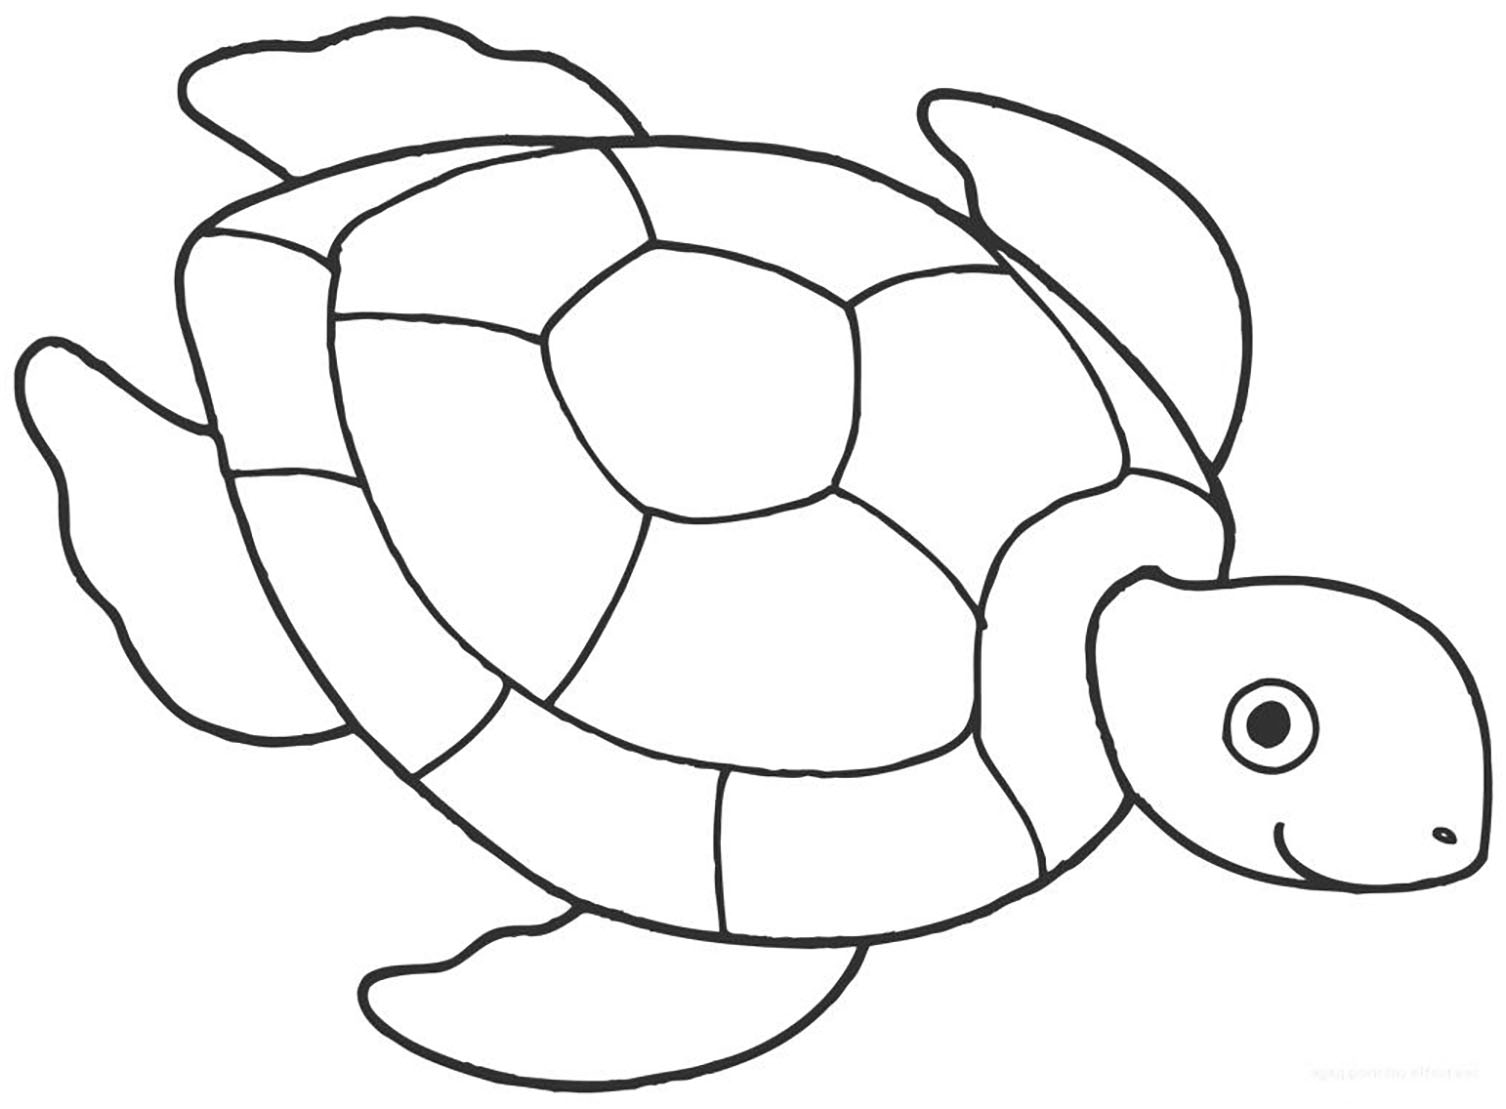 turtle pictures for coloring turtles to color for kids turtles kids coloring pages coloring for turtle pictures